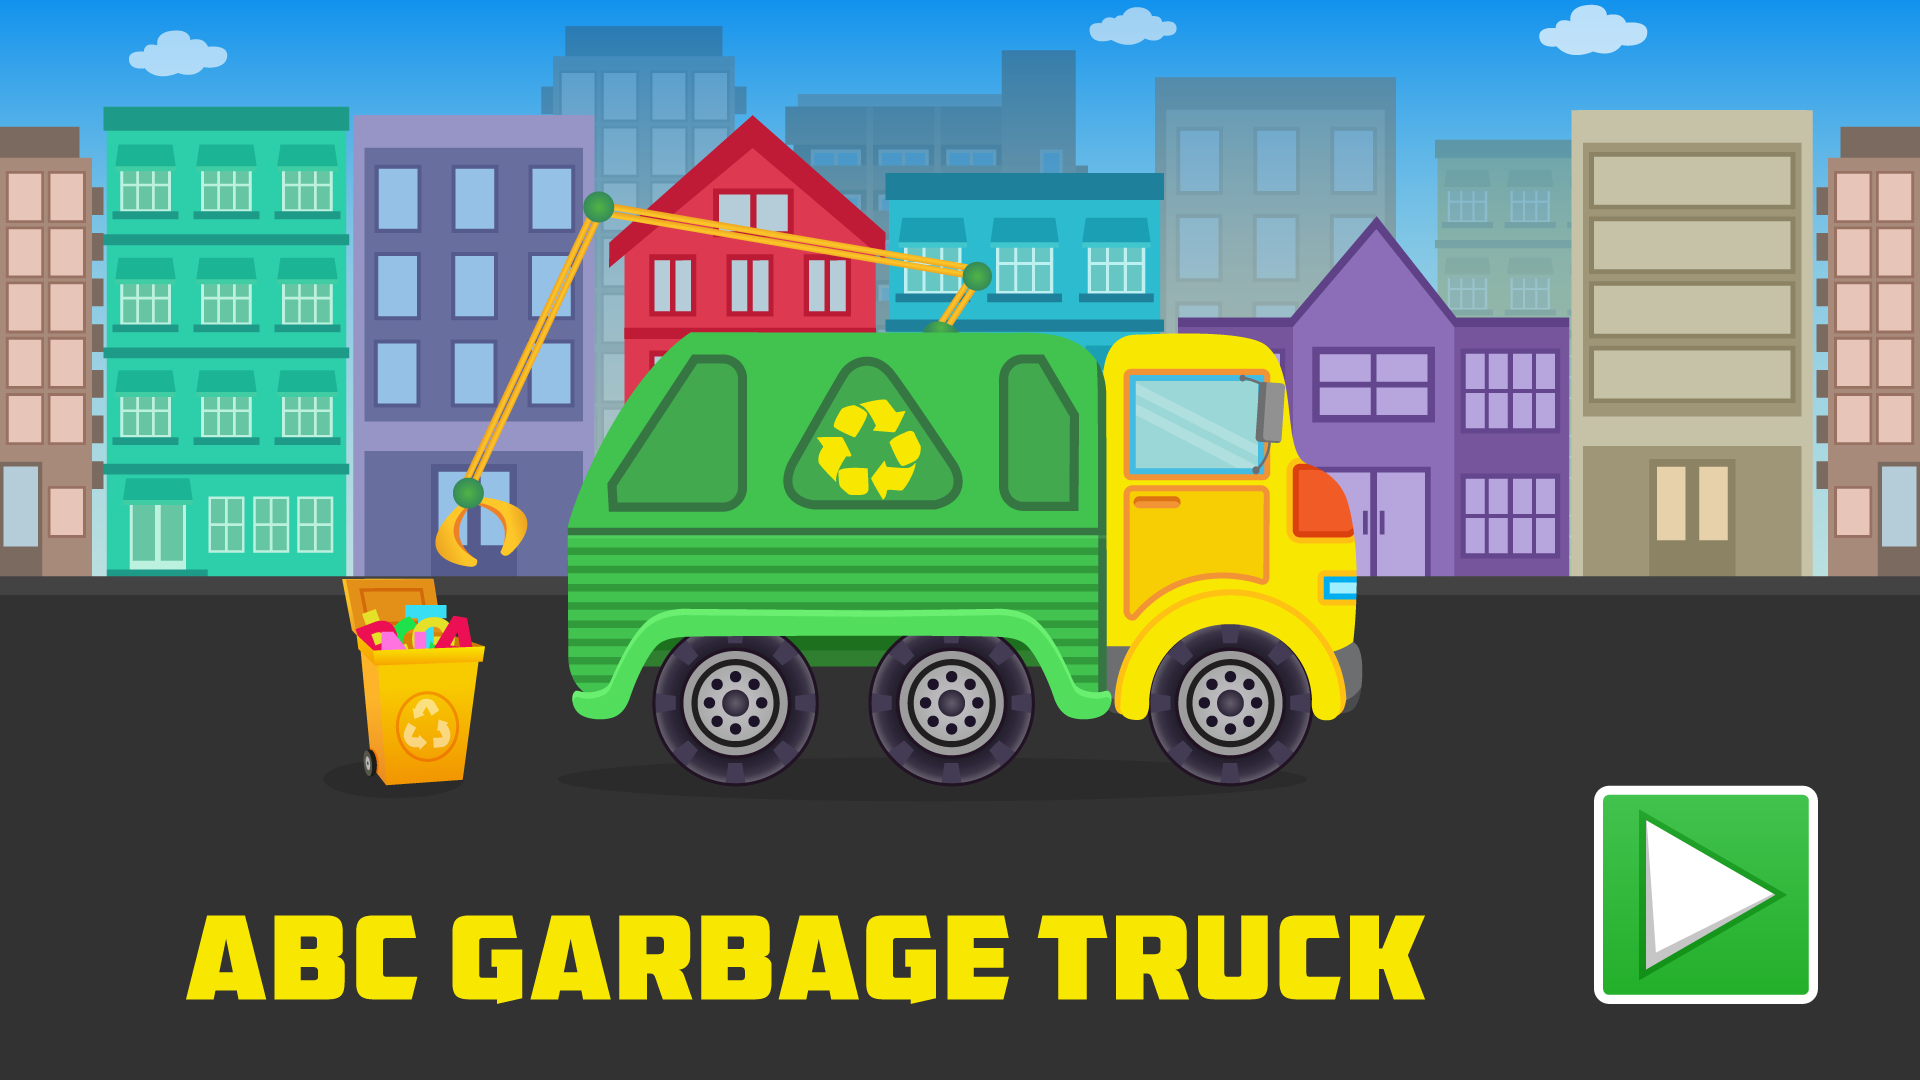 ABC Garbage Truck - Alphabet Fun Game for Preschool Toddler Kids Learning ABCs and Love Trucks and Things That Go screenshot 4